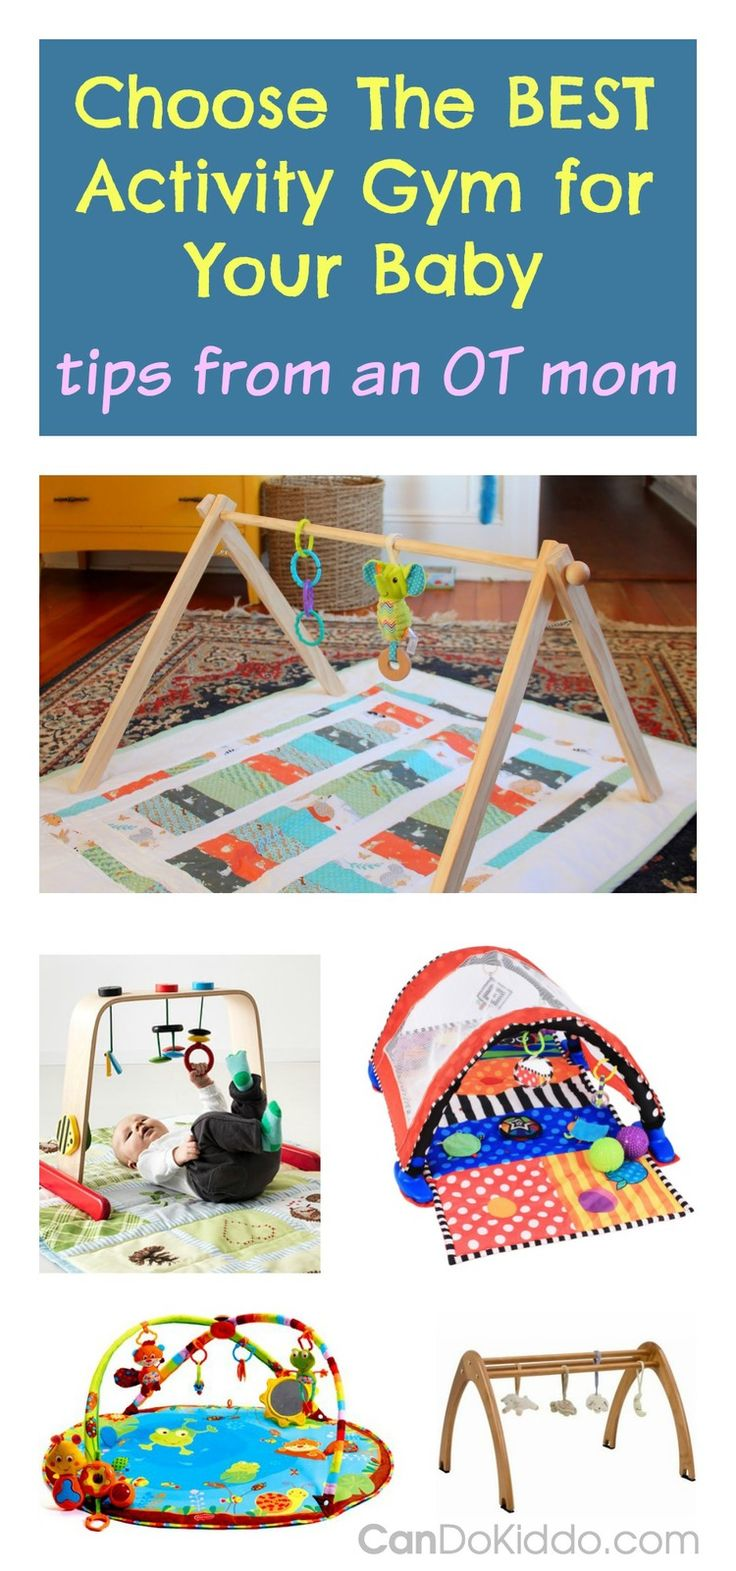 Leka wooden gym is OT's top pick. Choosing the Best Activity Gyms for Baby's development. CanDo Kiddo